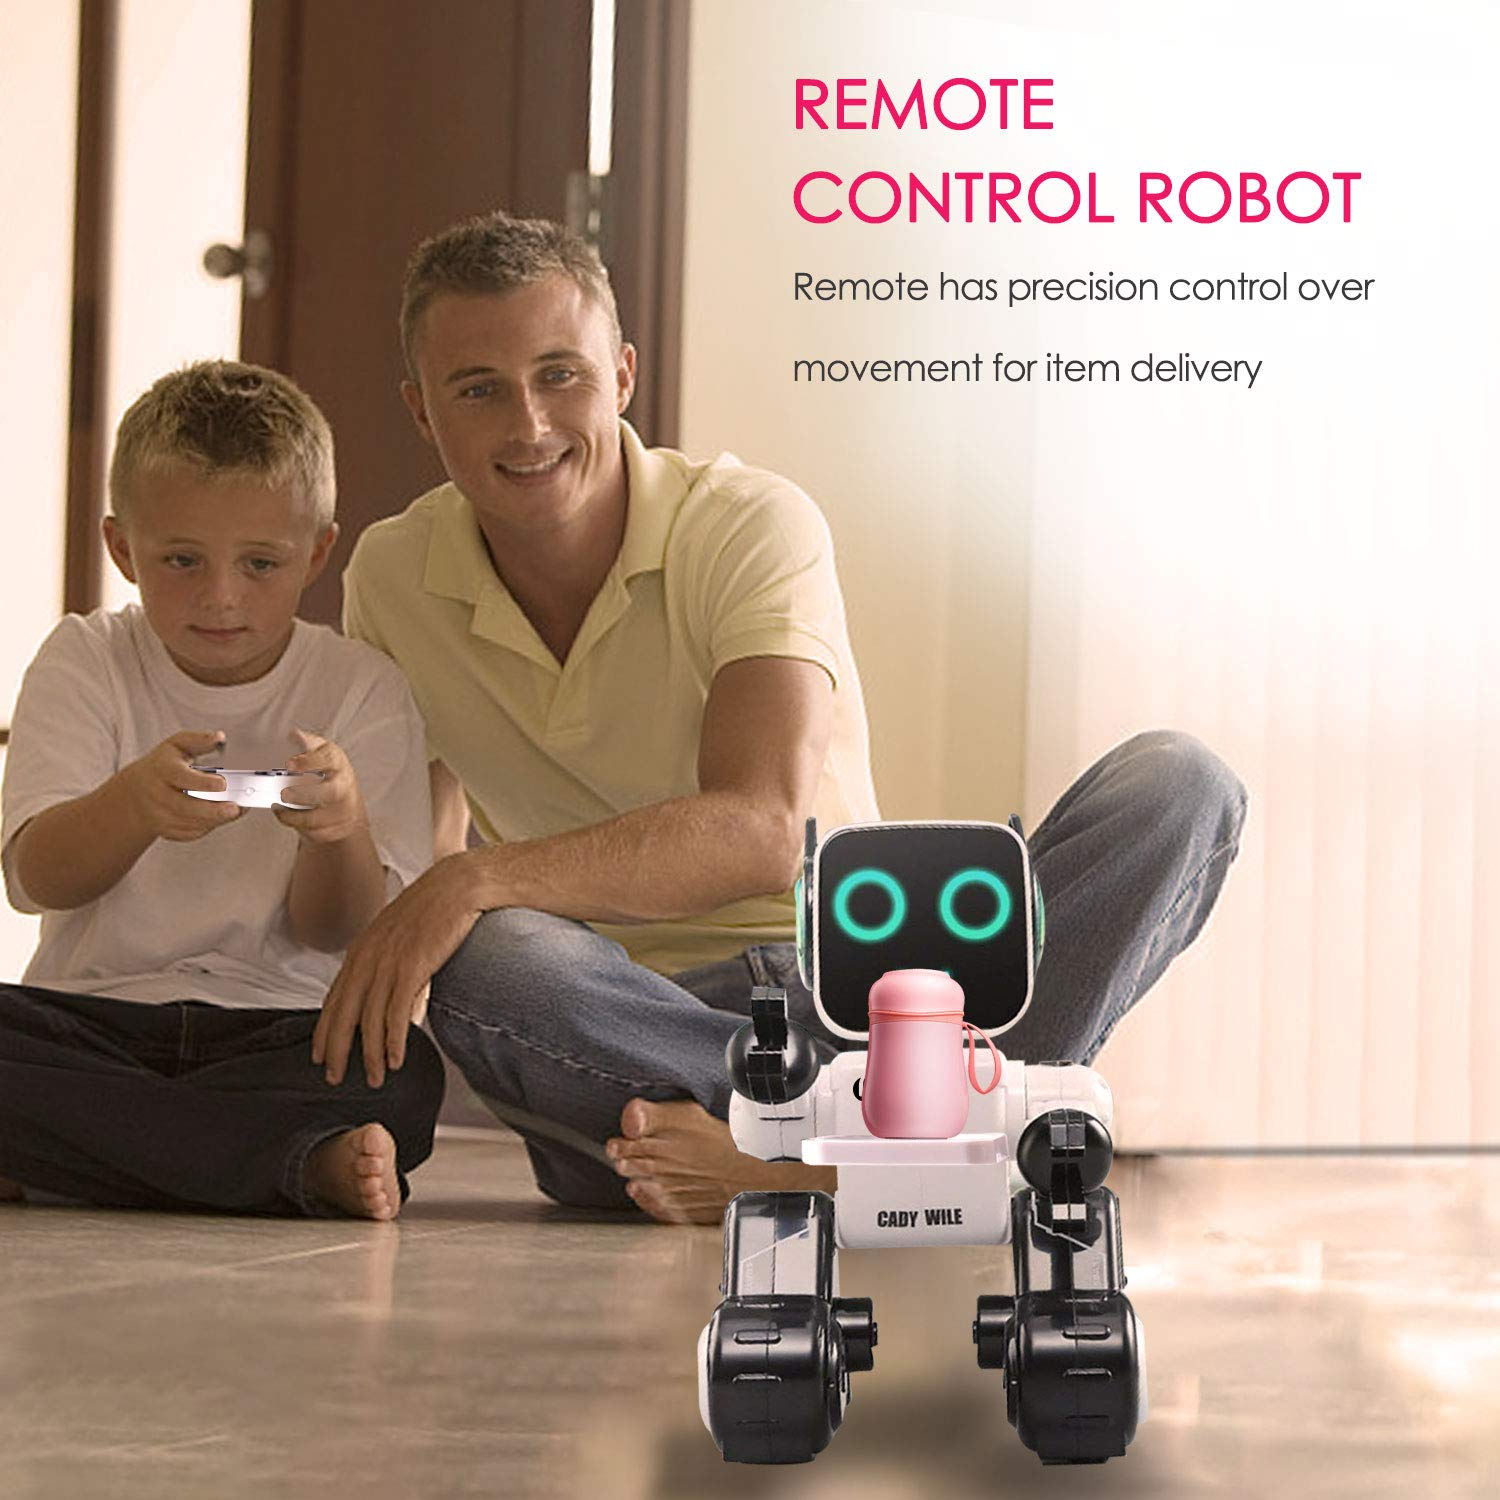 Remote Control Toy Robot for kids,Touch & Sound Control, Speaks, Dance Moves, Plays Music, Light-up Eyes & Mouth. Built-in Coin Bank. Programmable, Rechargeable RC Robot Kit for Boys, Girls All Ages. by IHBUDS (Image #8)